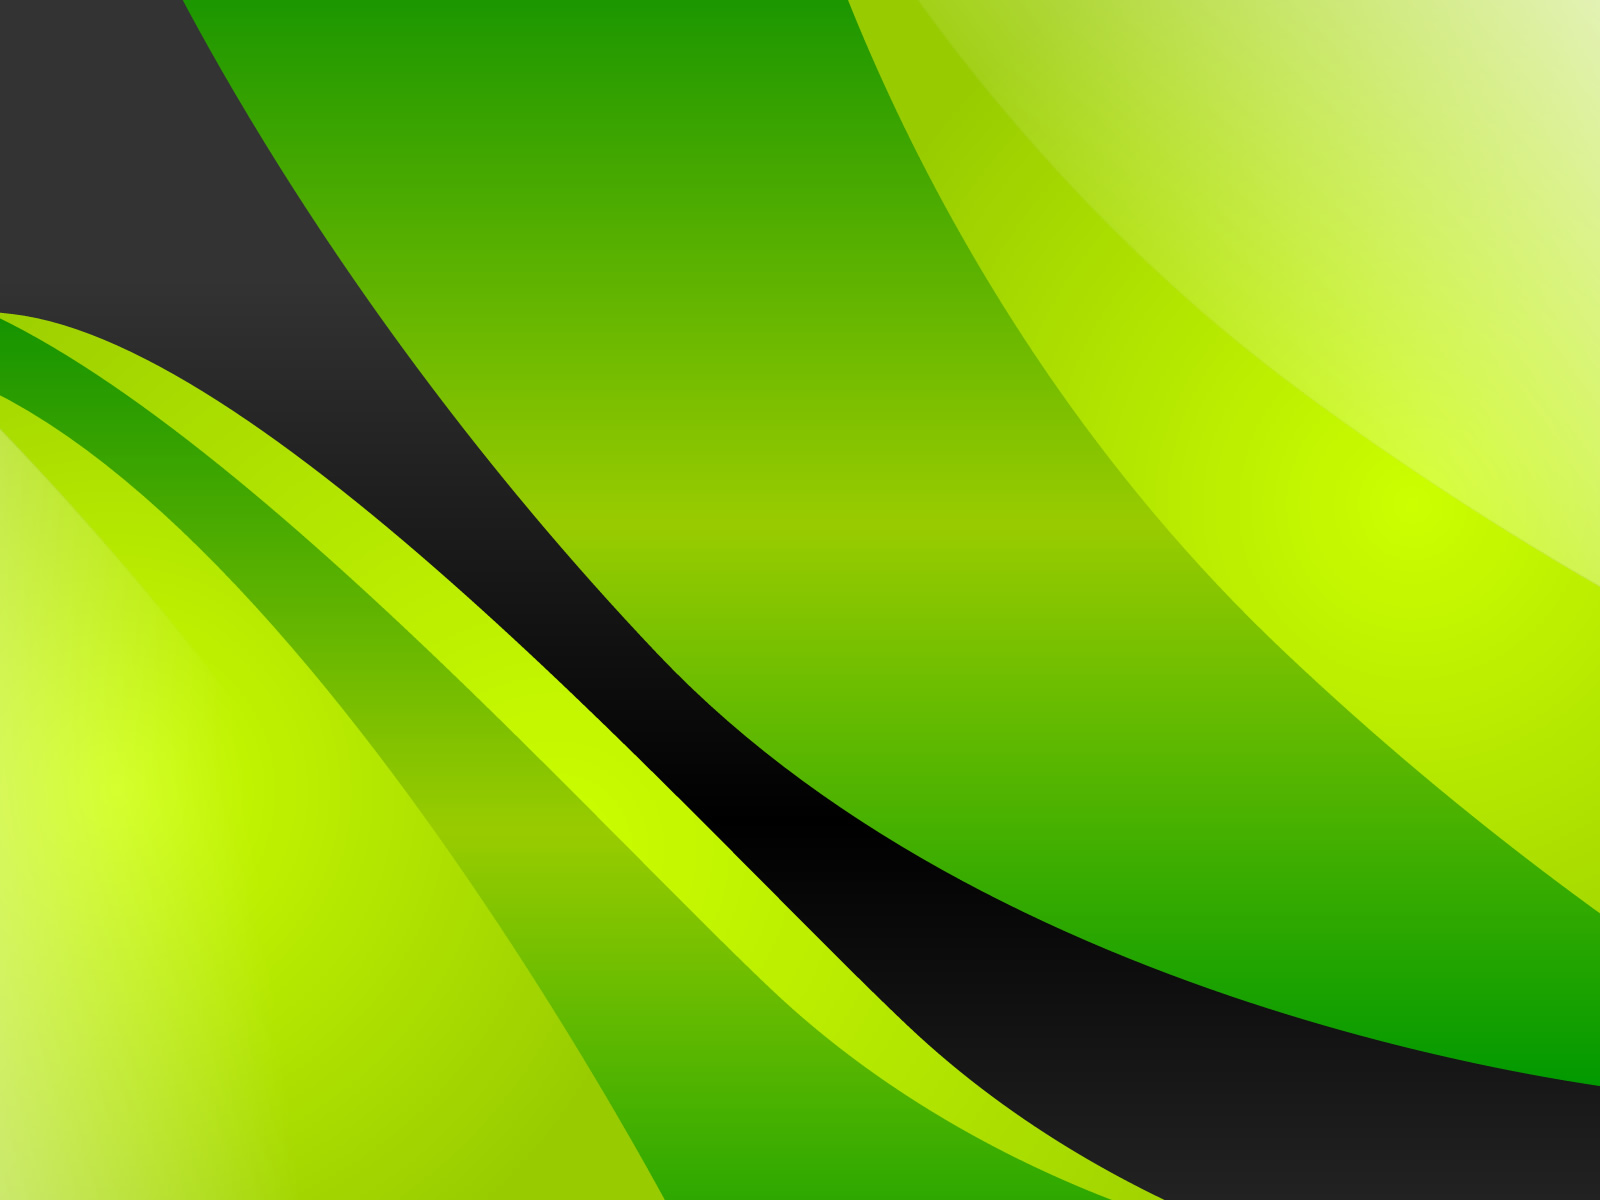 Free Download Black And White Wallpapers Green Yellow